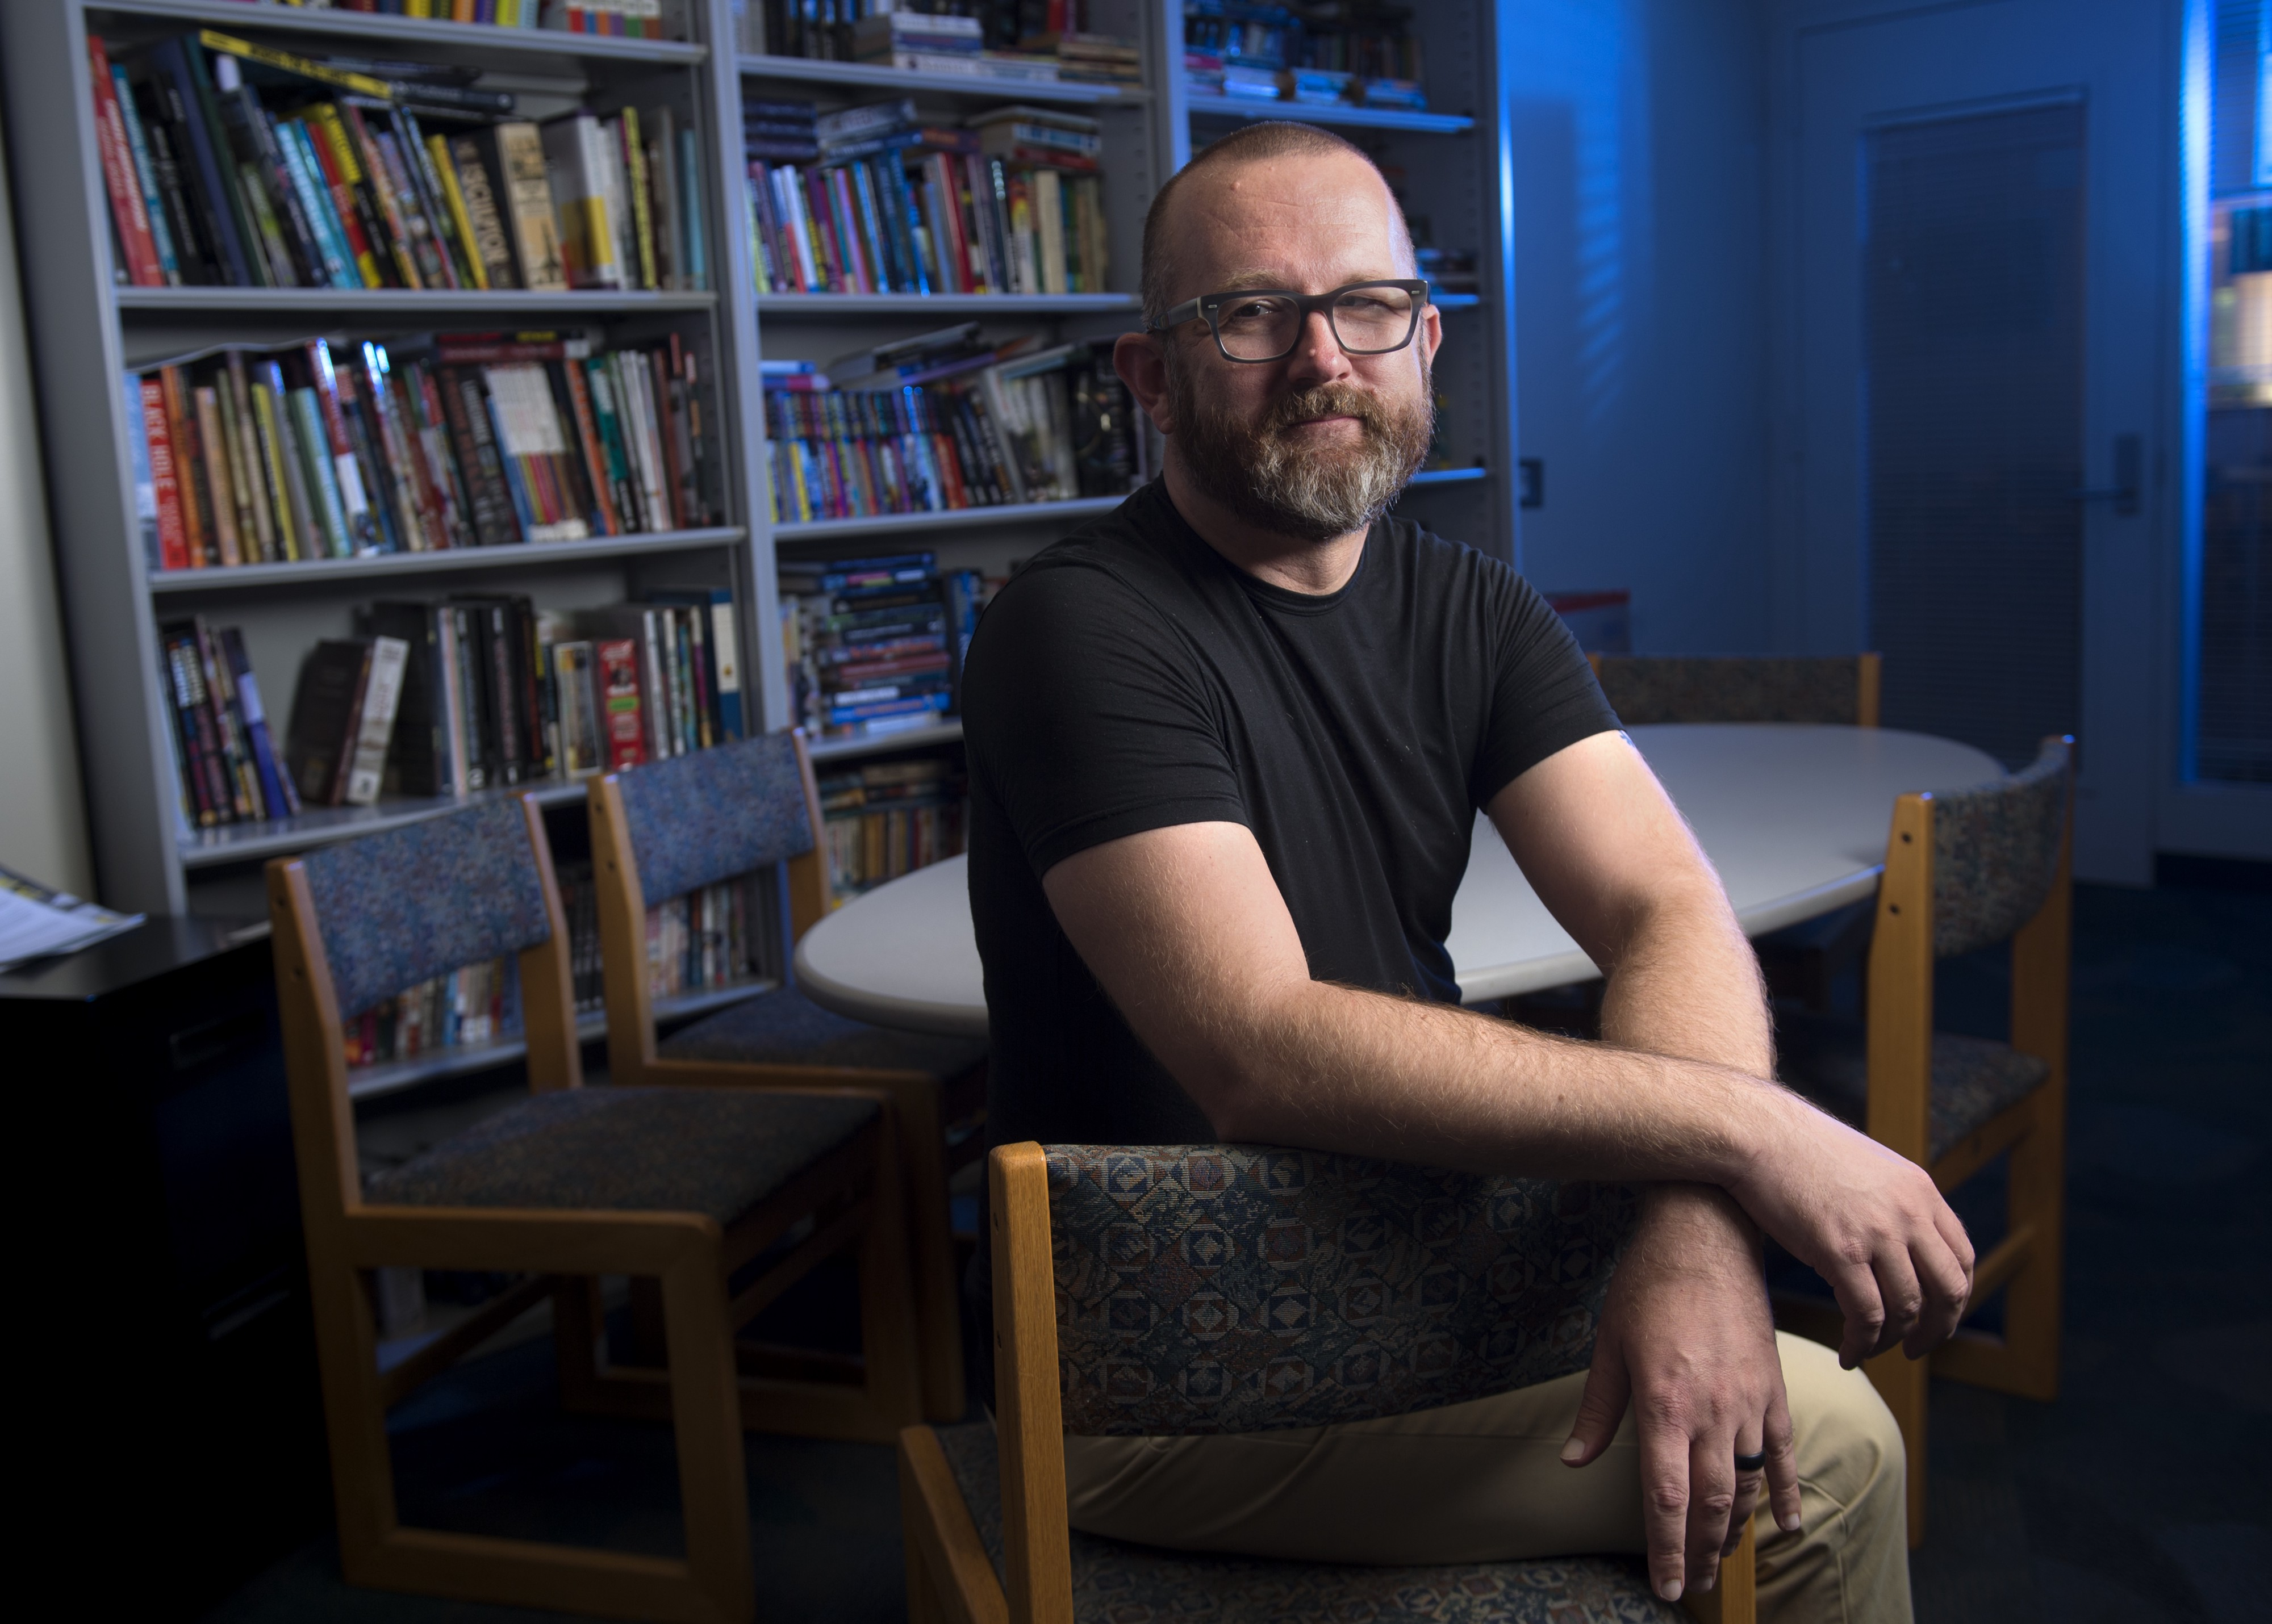 Jonathan Alexander sits in a library, facing the camera